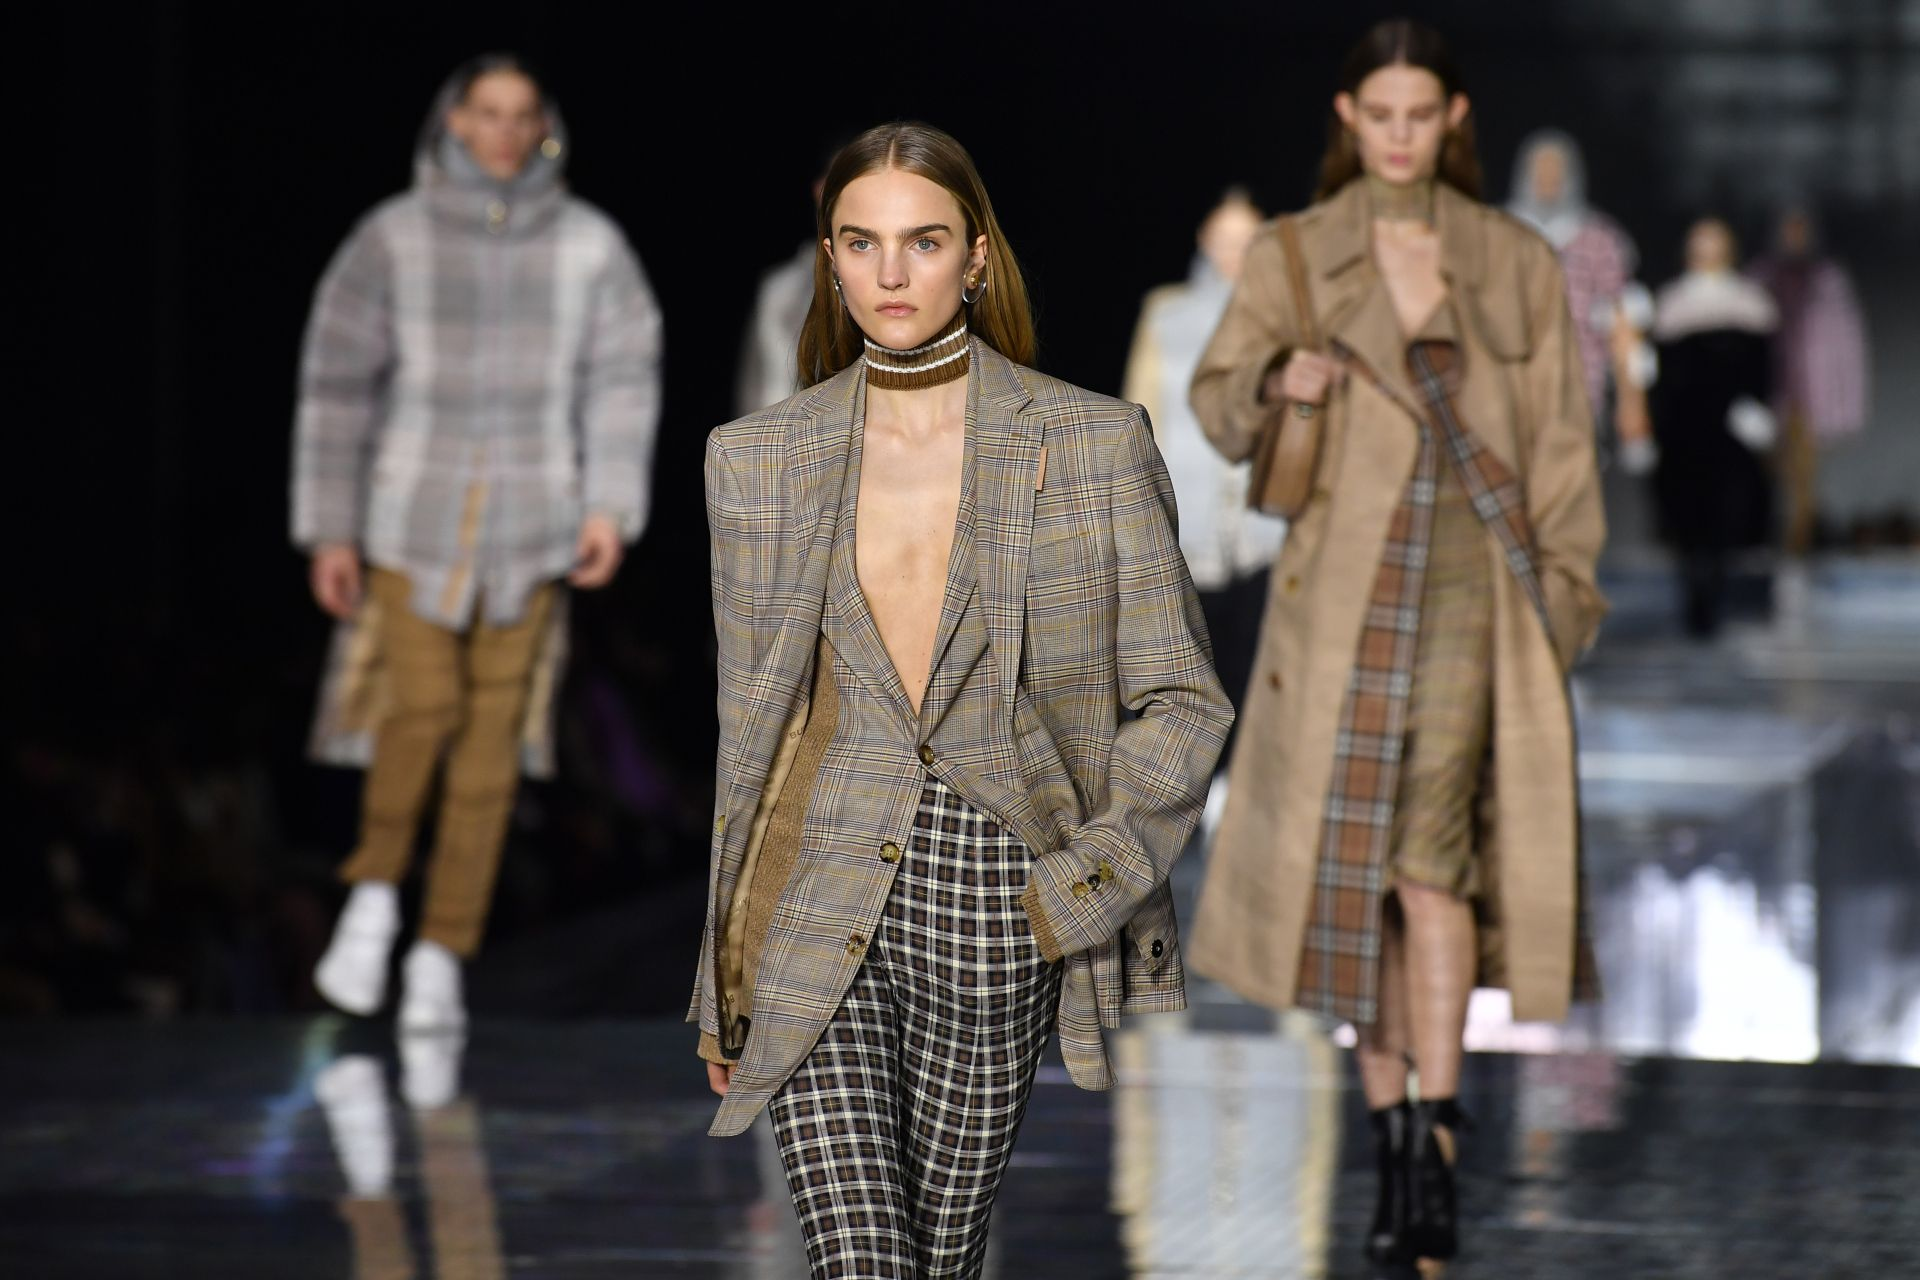 Models present creations during the British fashion house Burberry 2020 Autumn / Winter collection catwalk show during London Fashion Week in London on February 17, 2020. (Photo by Ben STANSALL / AFP)